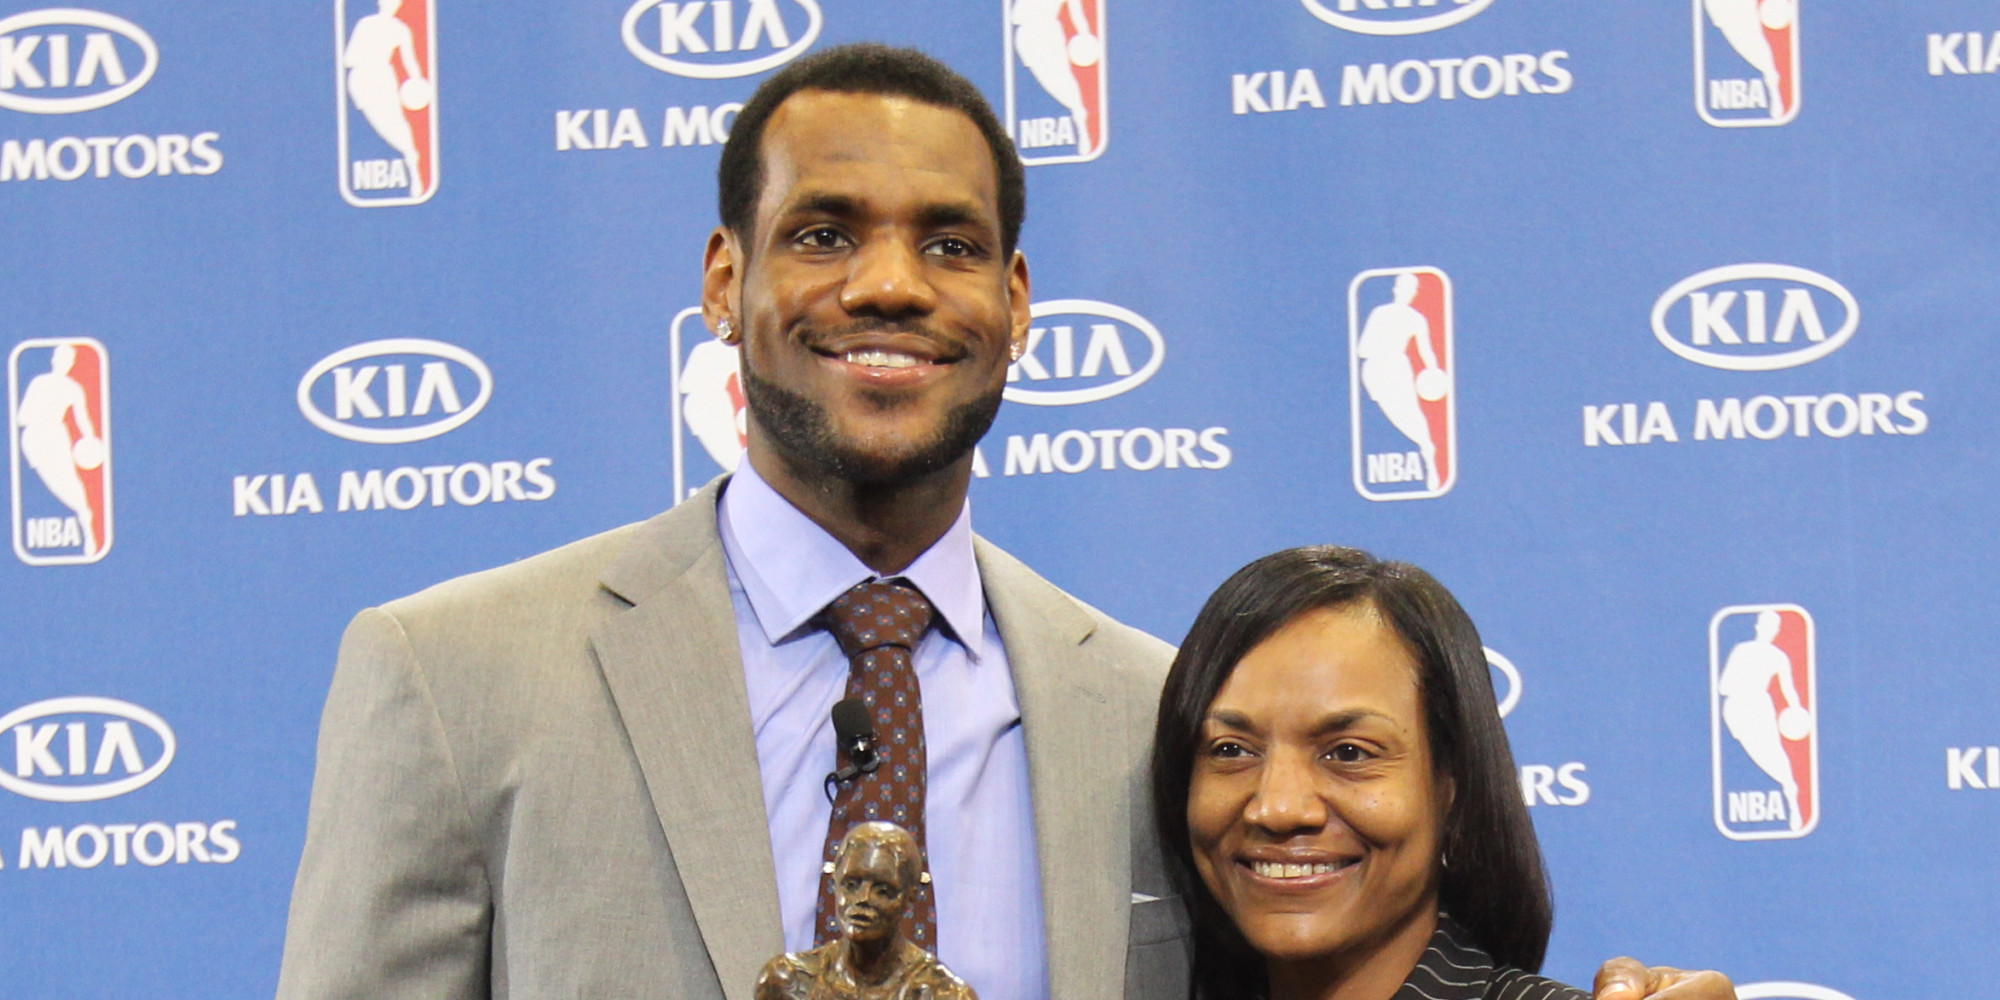 lebron james pens touching essay on being raised by a single mom  lebron james pens touching essay on being raised by a single mom huffpost